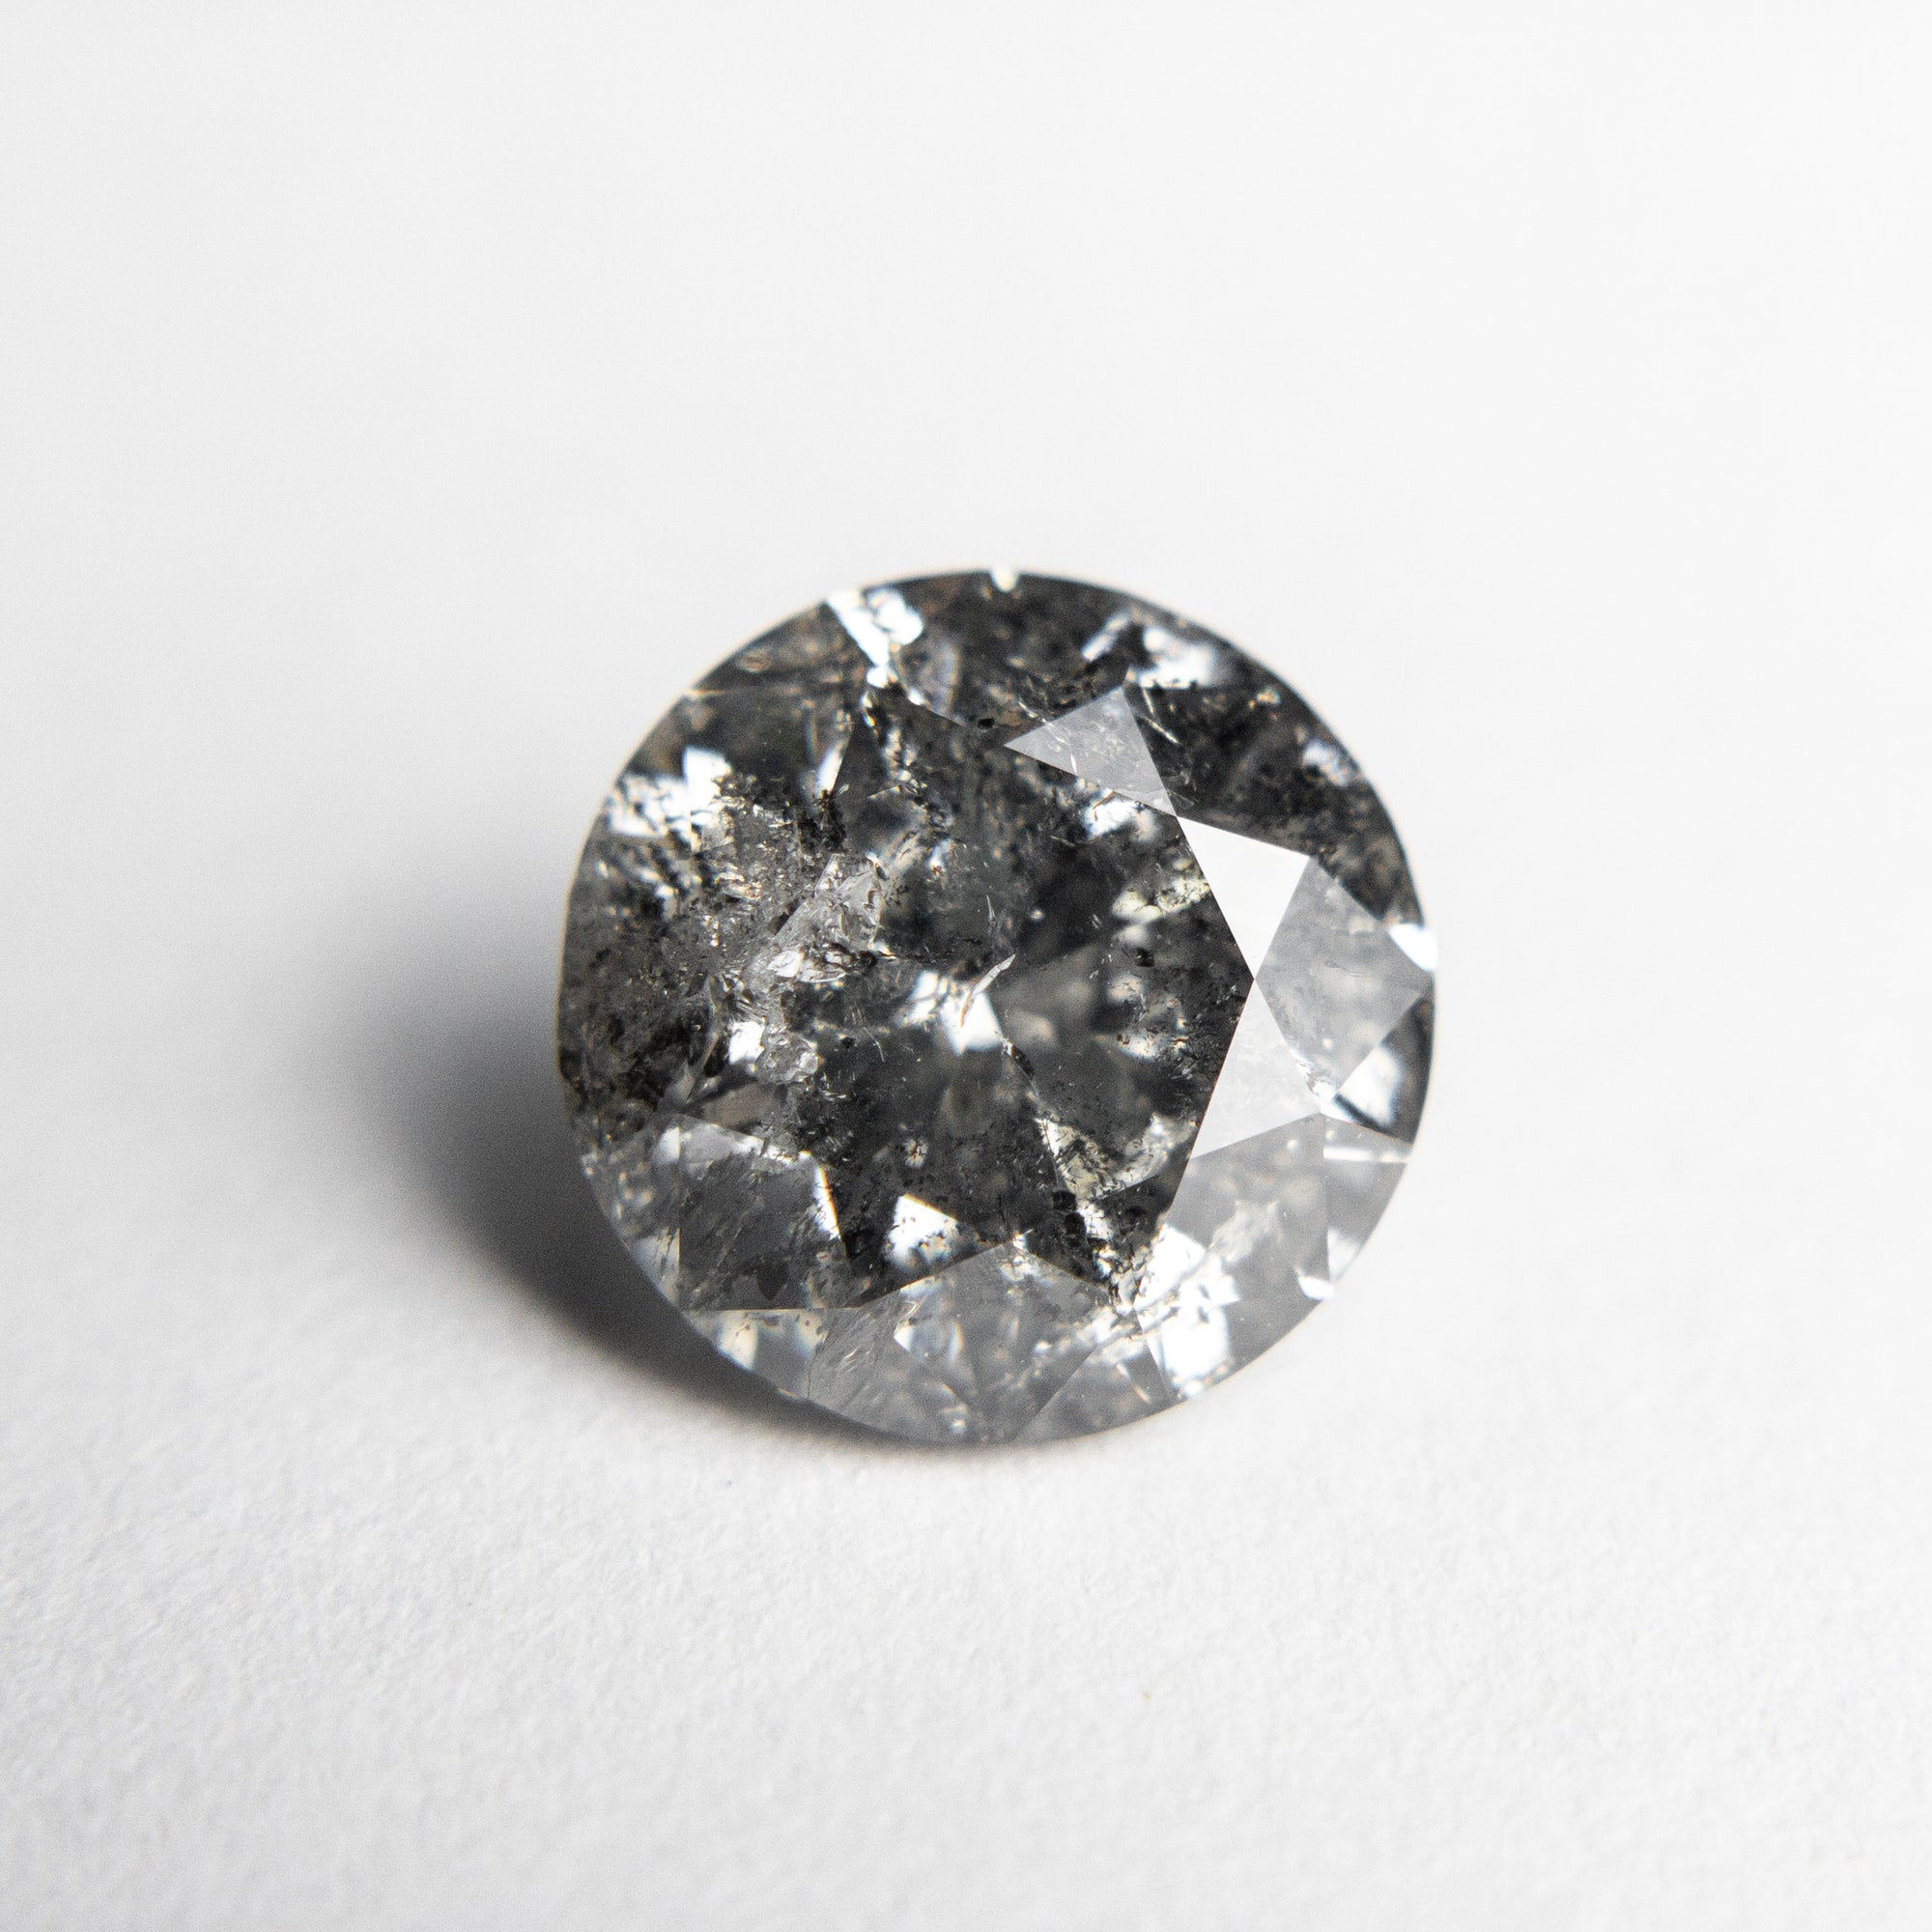 2.66ct 8.60x8.58x5.51mm Round Brilliant 18460-02